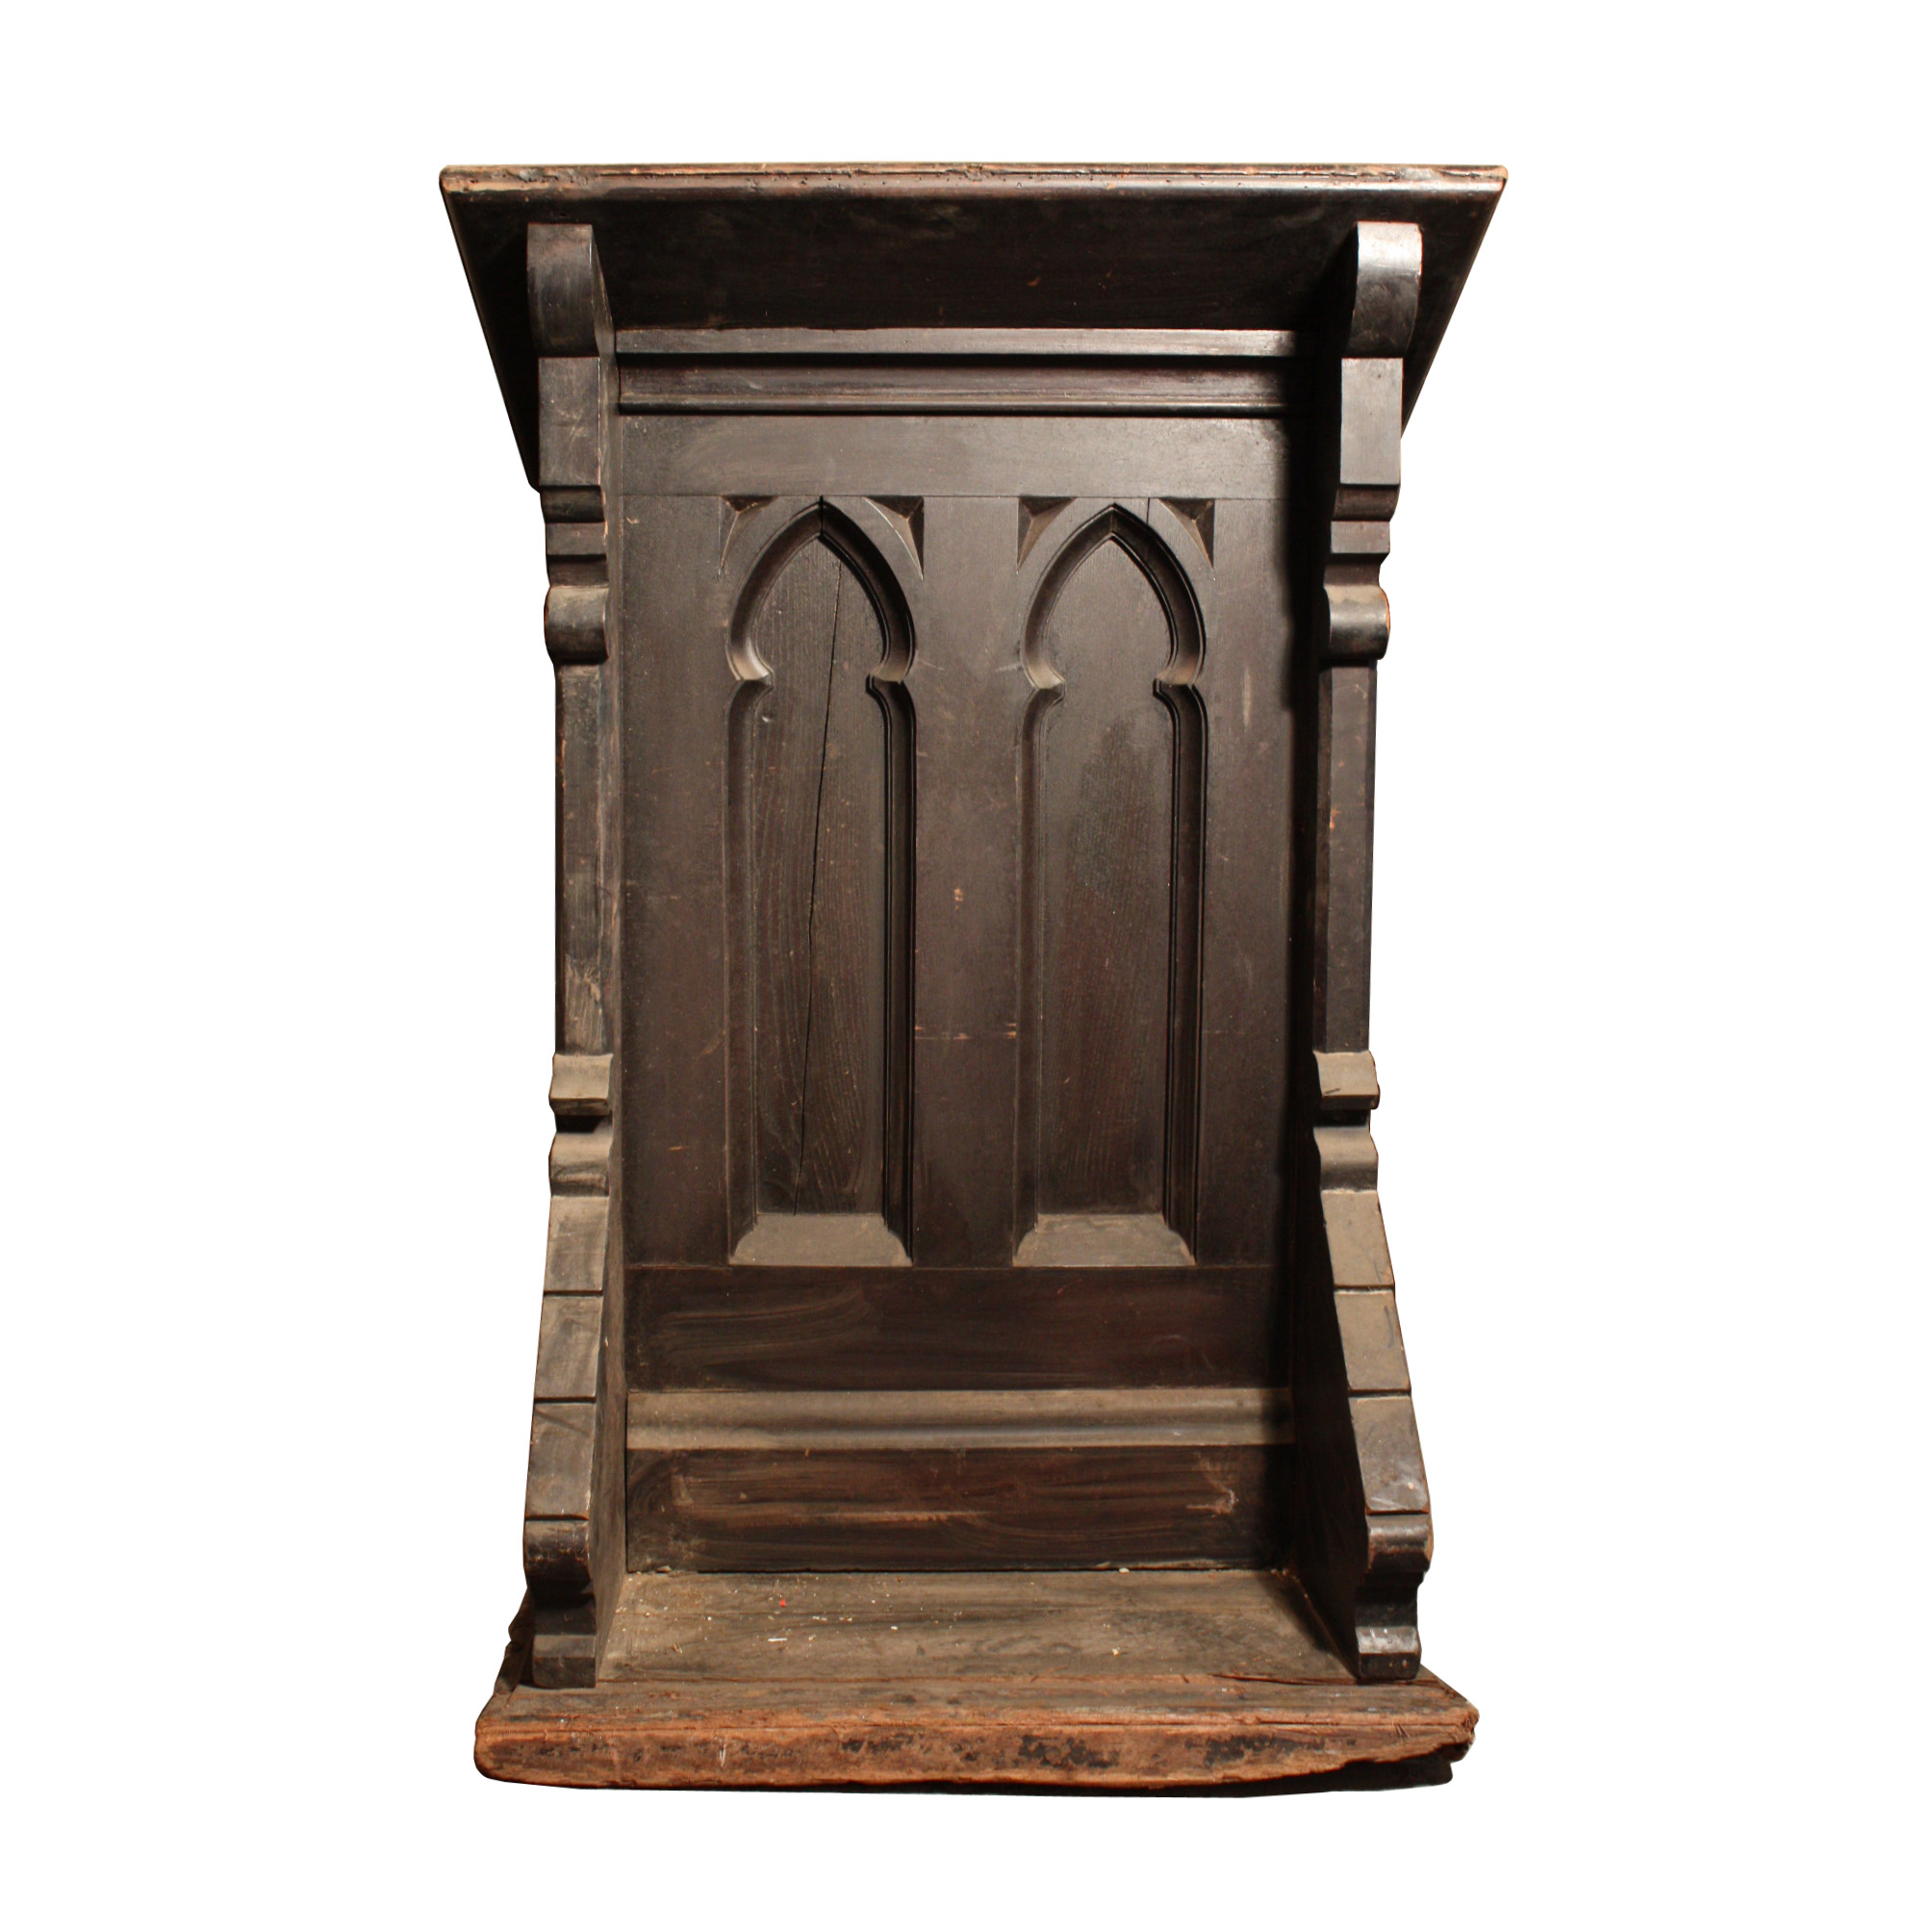 Antique gothic revival furniture for sale - Remarkable Antique Gothic Revival Pulpit Oak 19th Century Np2 Rw For Sale